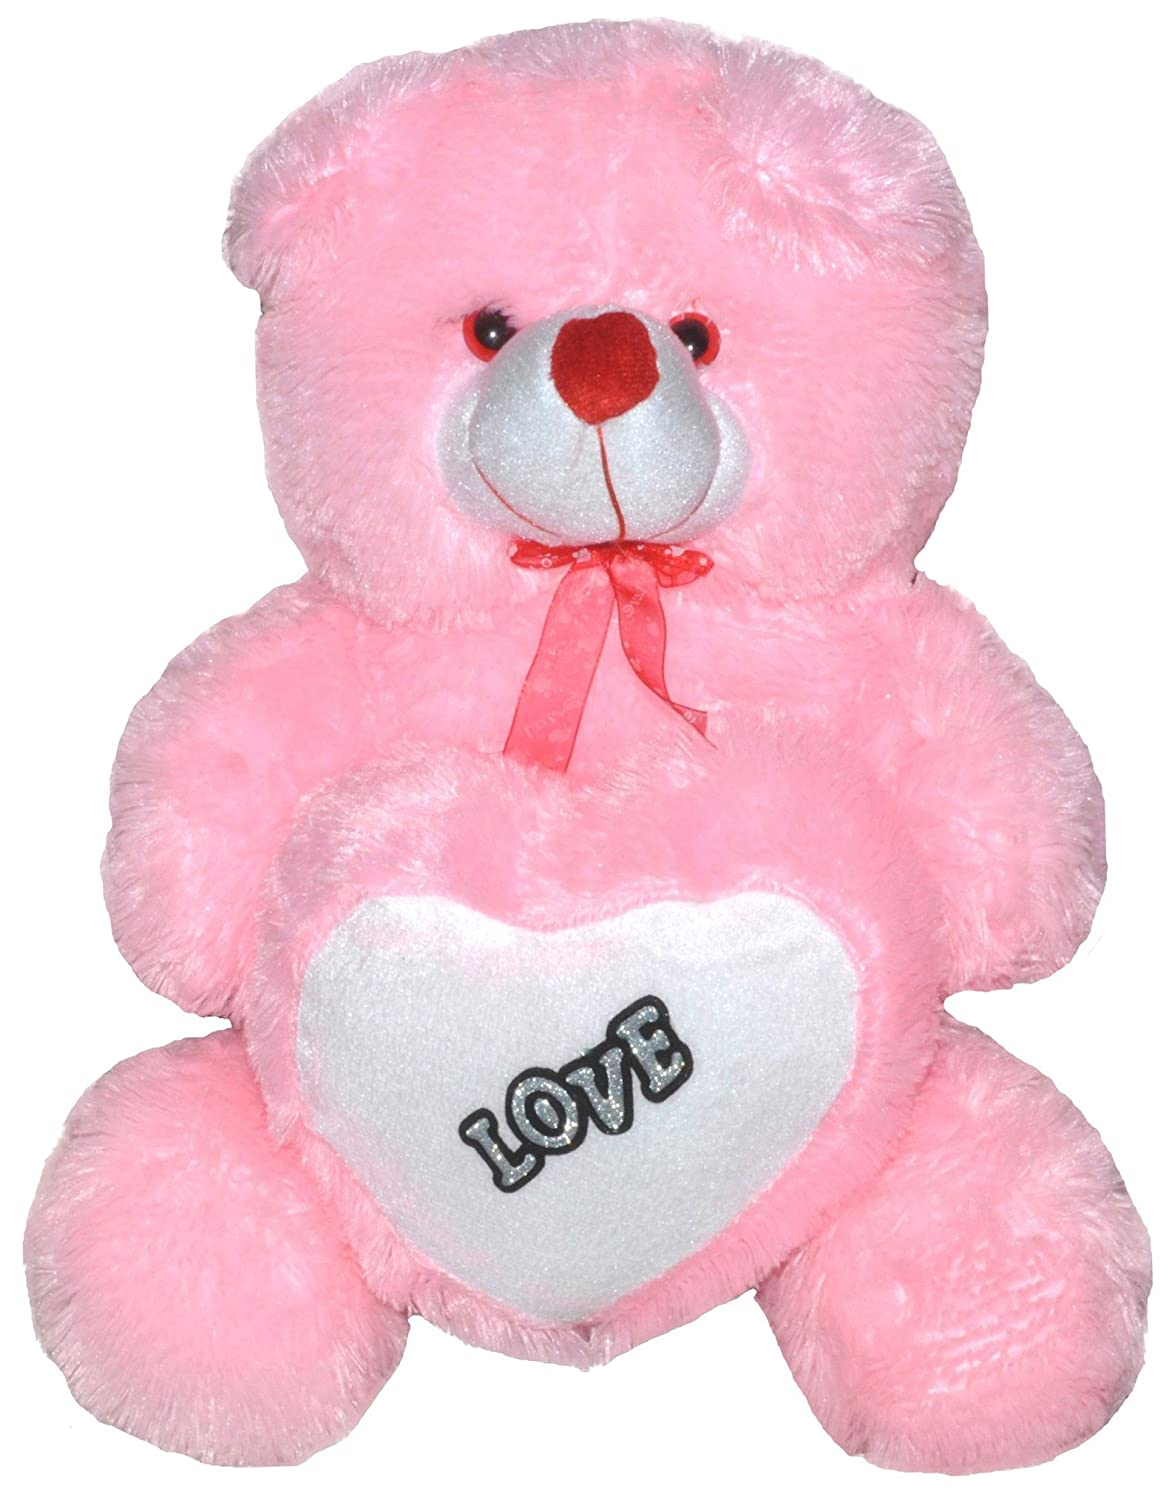 Buy richy toys 50 cm love heart stuffed soft plush toy kids buy richy toys 50 cm love heart stuffed soft plush toy kids birthday teddy bear pink online at low prices in india amazon fandeluxe Ebook collections